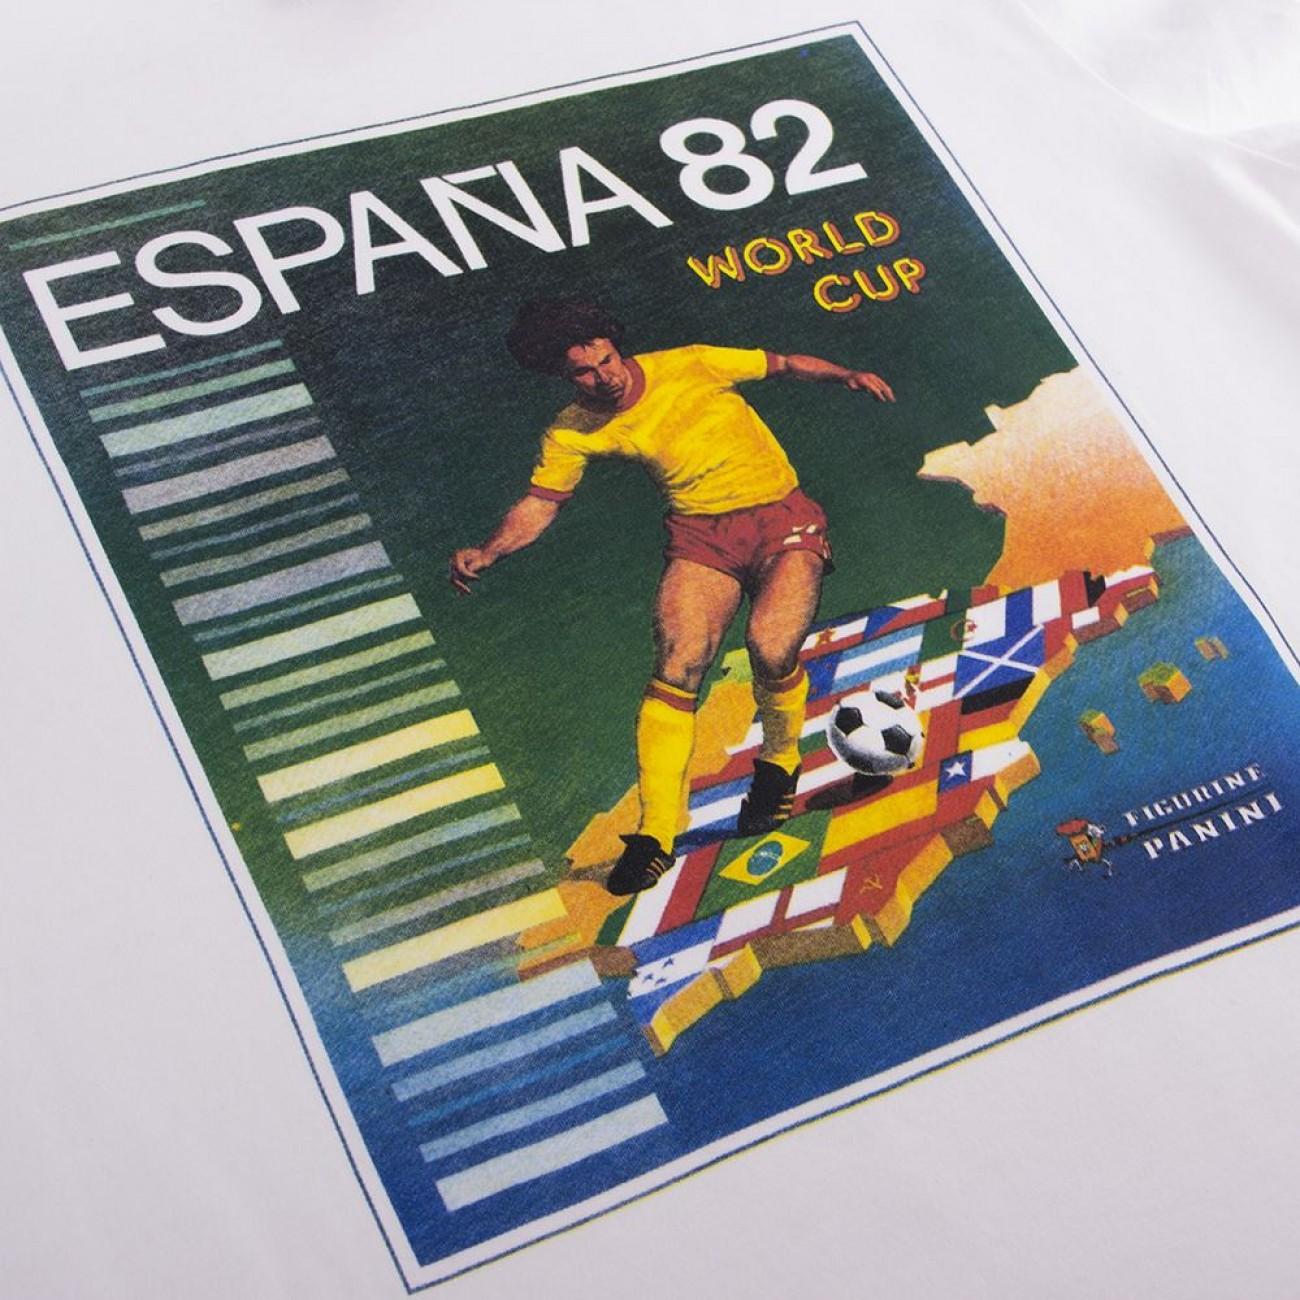 T-shirt 1982 World Cup